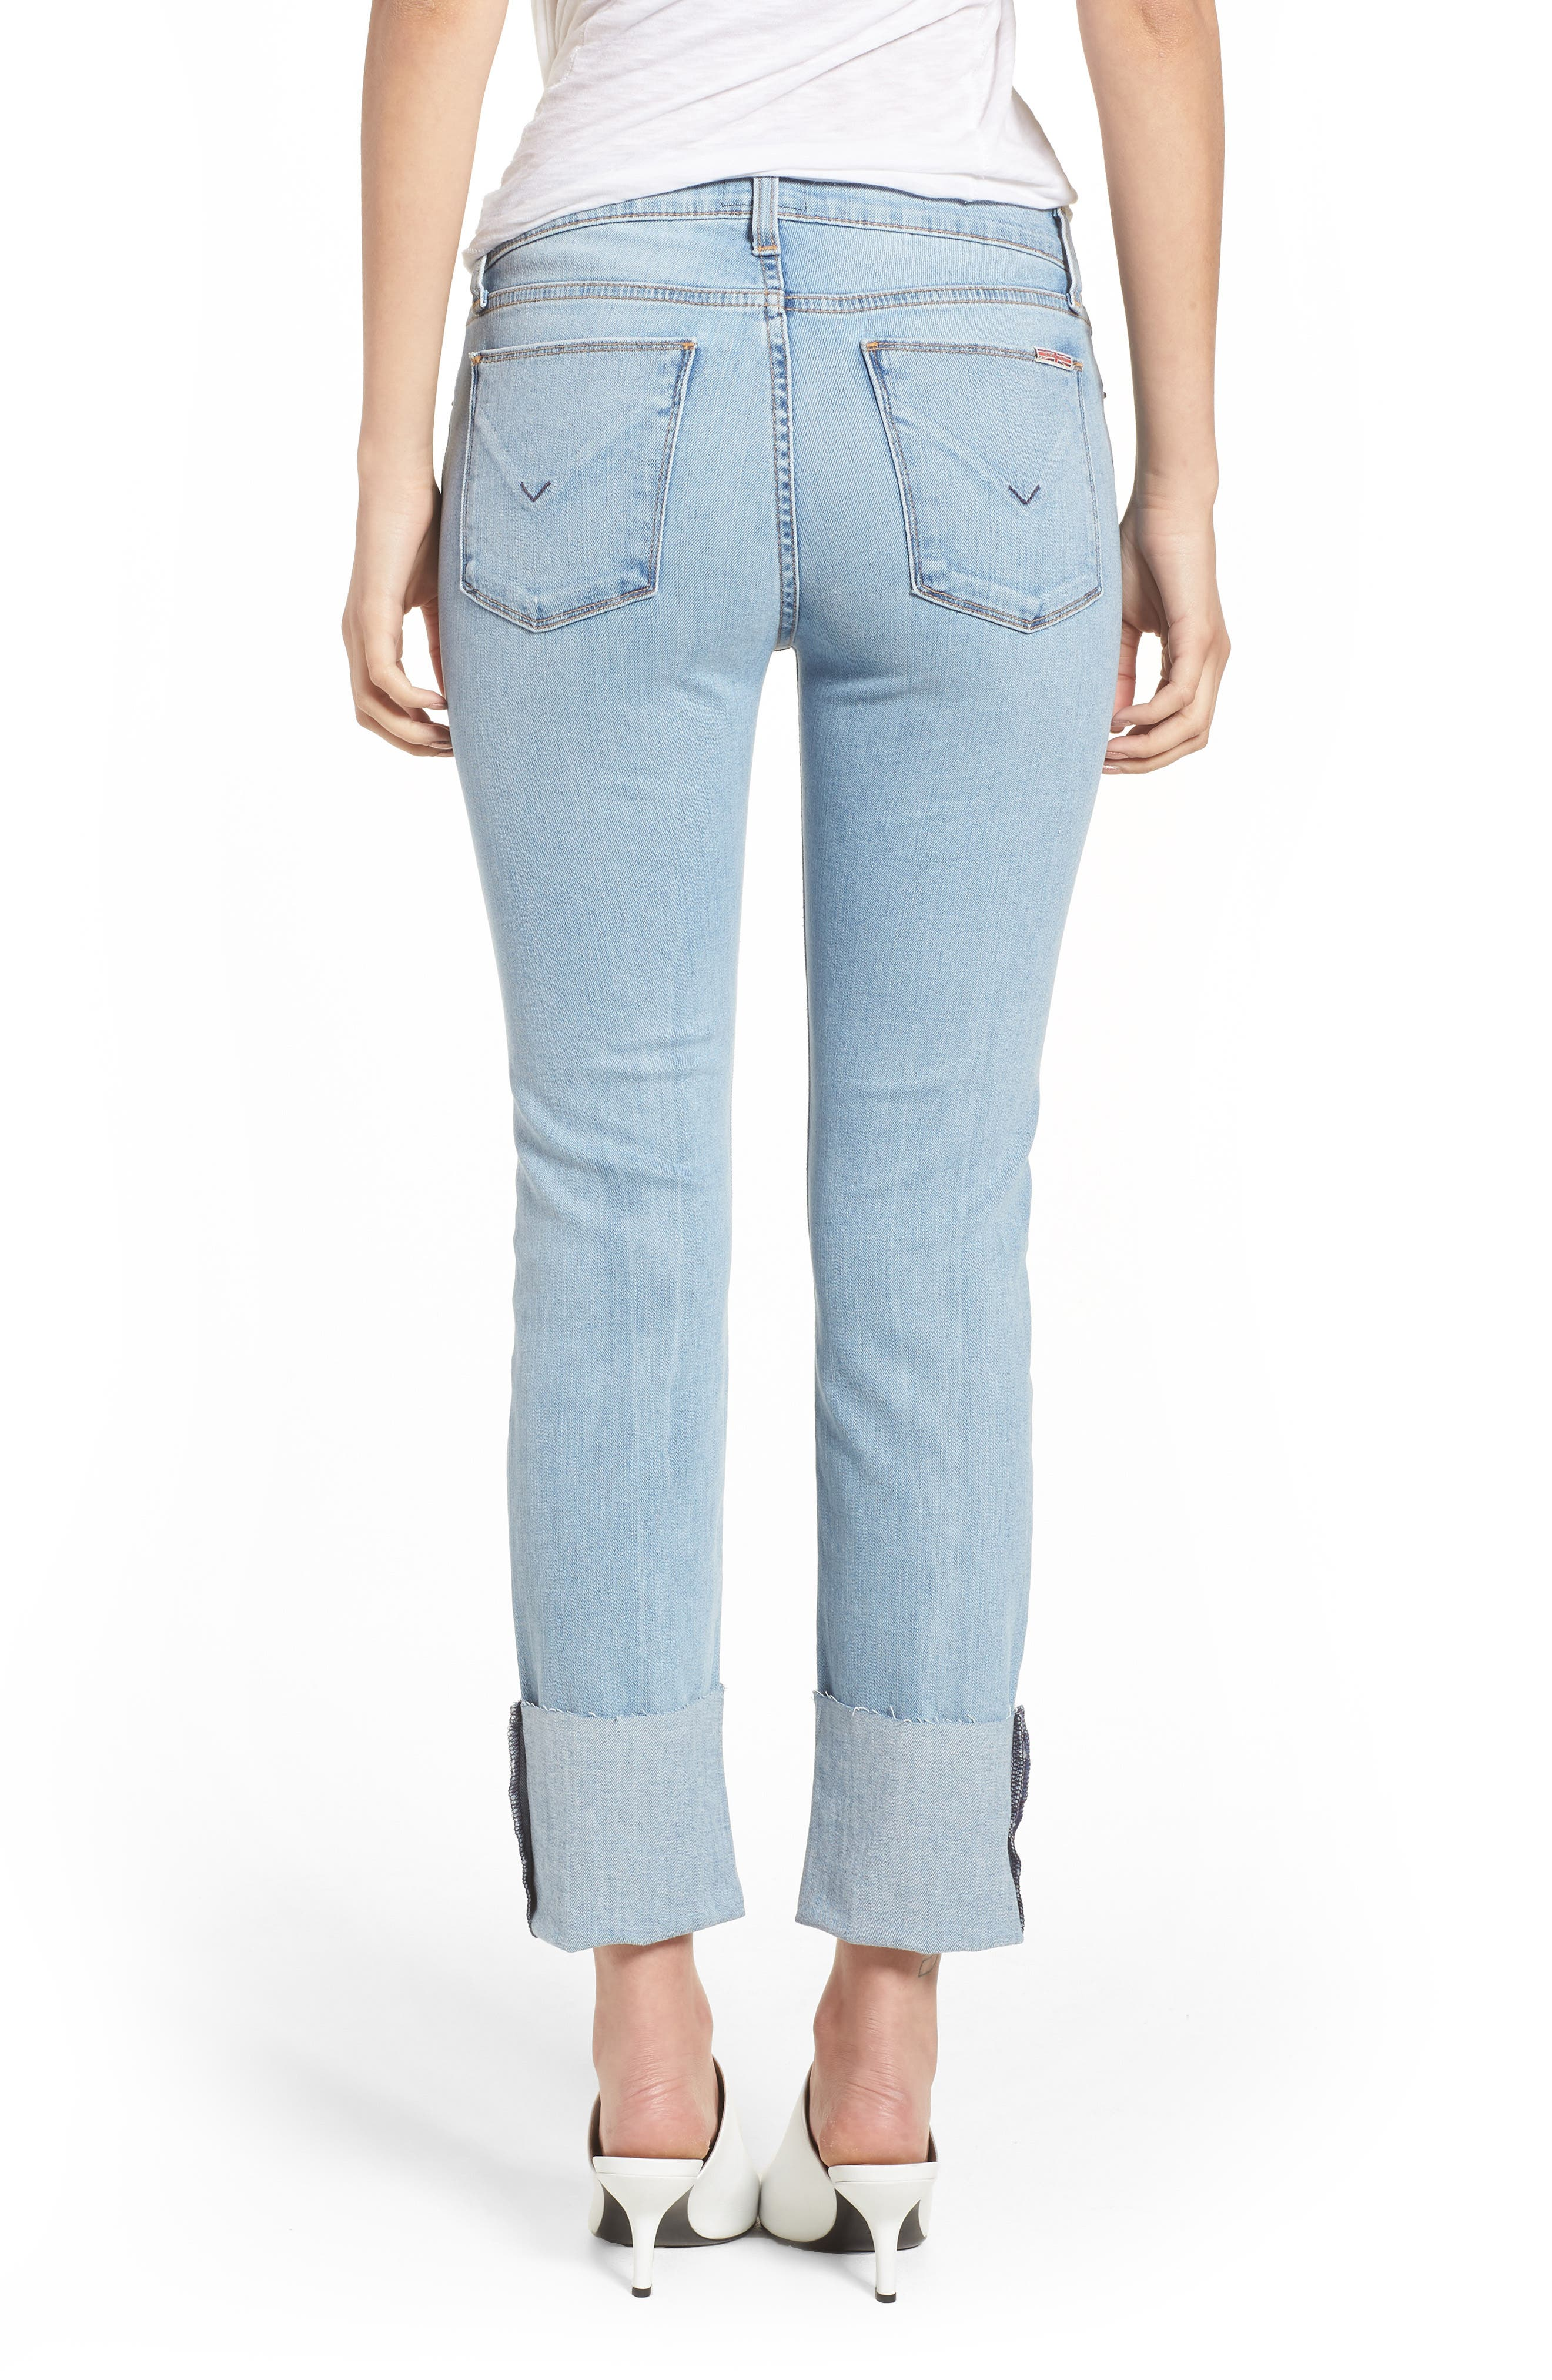 Tally Cuffed Crop Skinny Jeans,                             Alternate thumbnail 7, color,